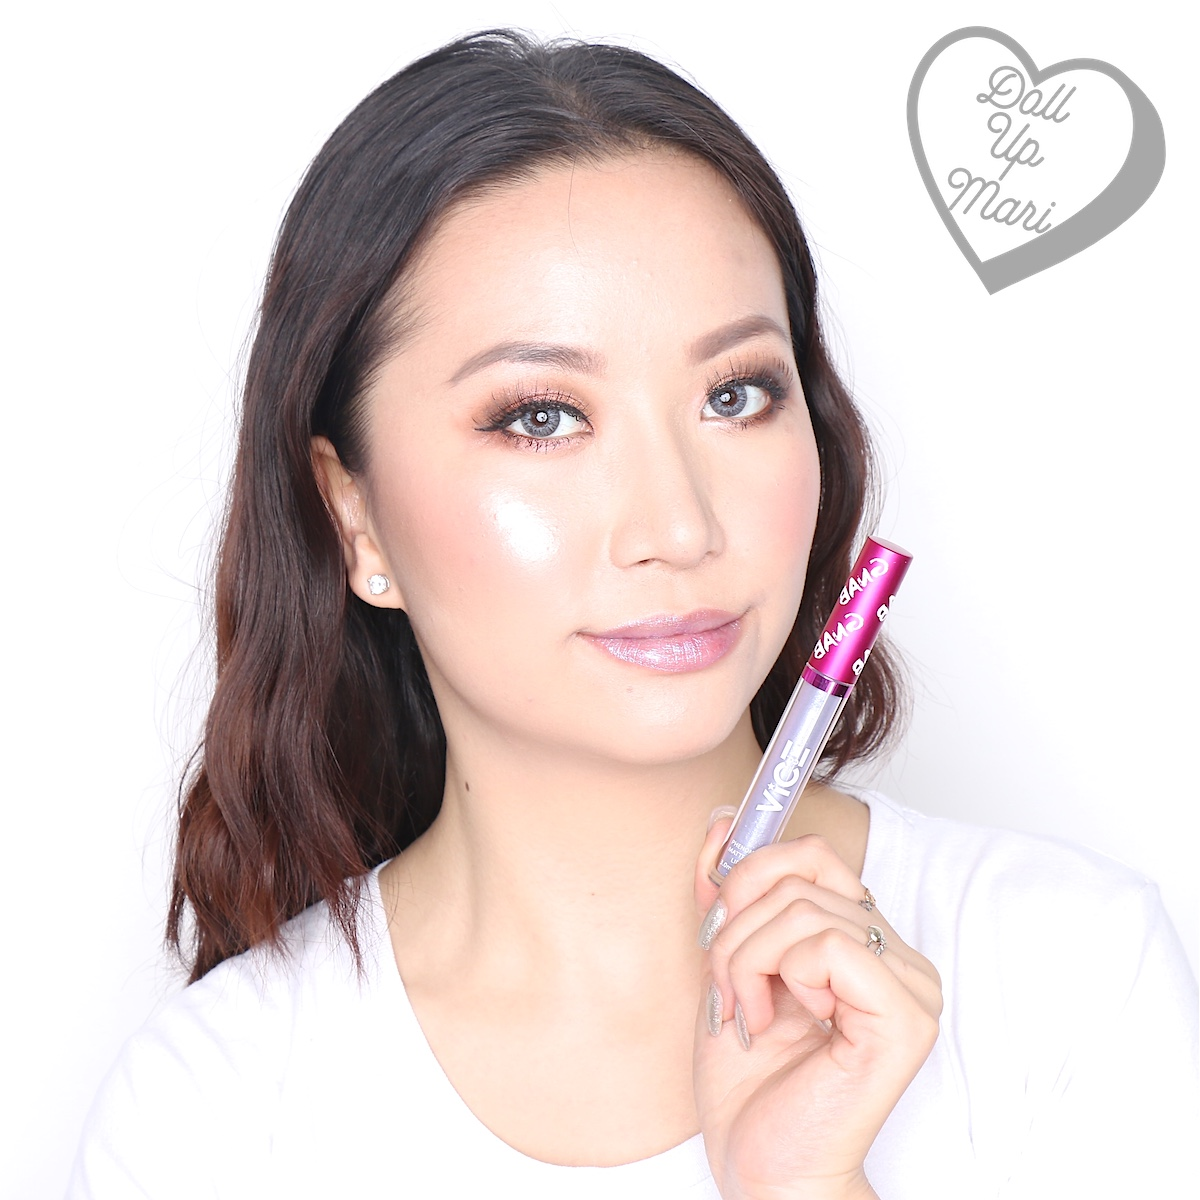 Mari wearing the Glitter Topper of the Fashown set of Vice X Bang Lip set collection